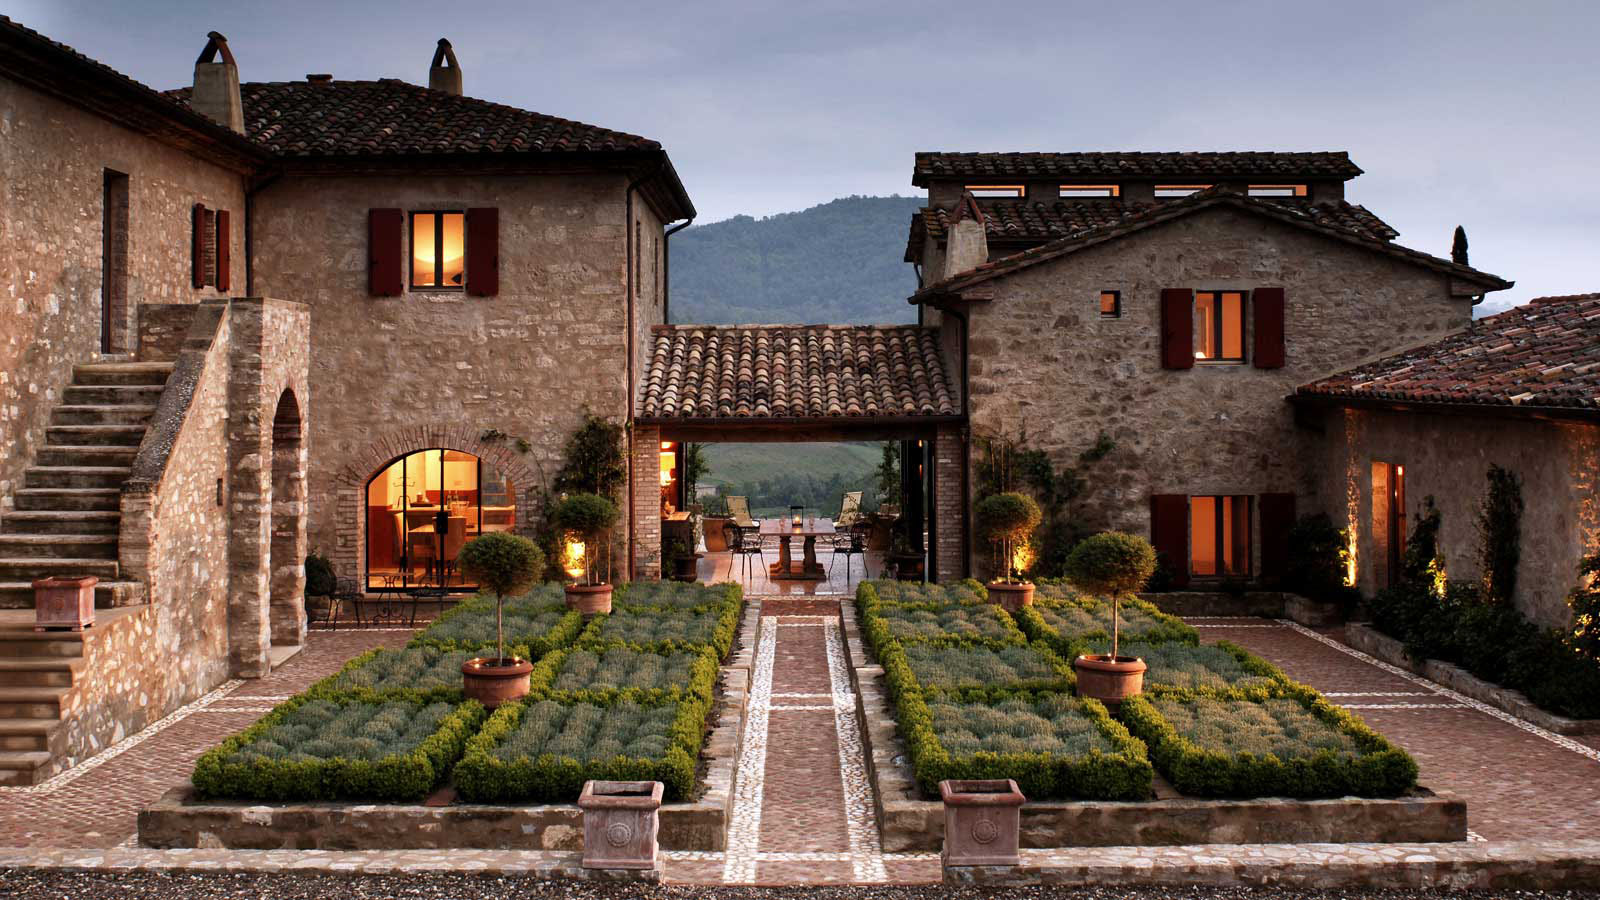 Old Italian Country Houses 5 great tips to...